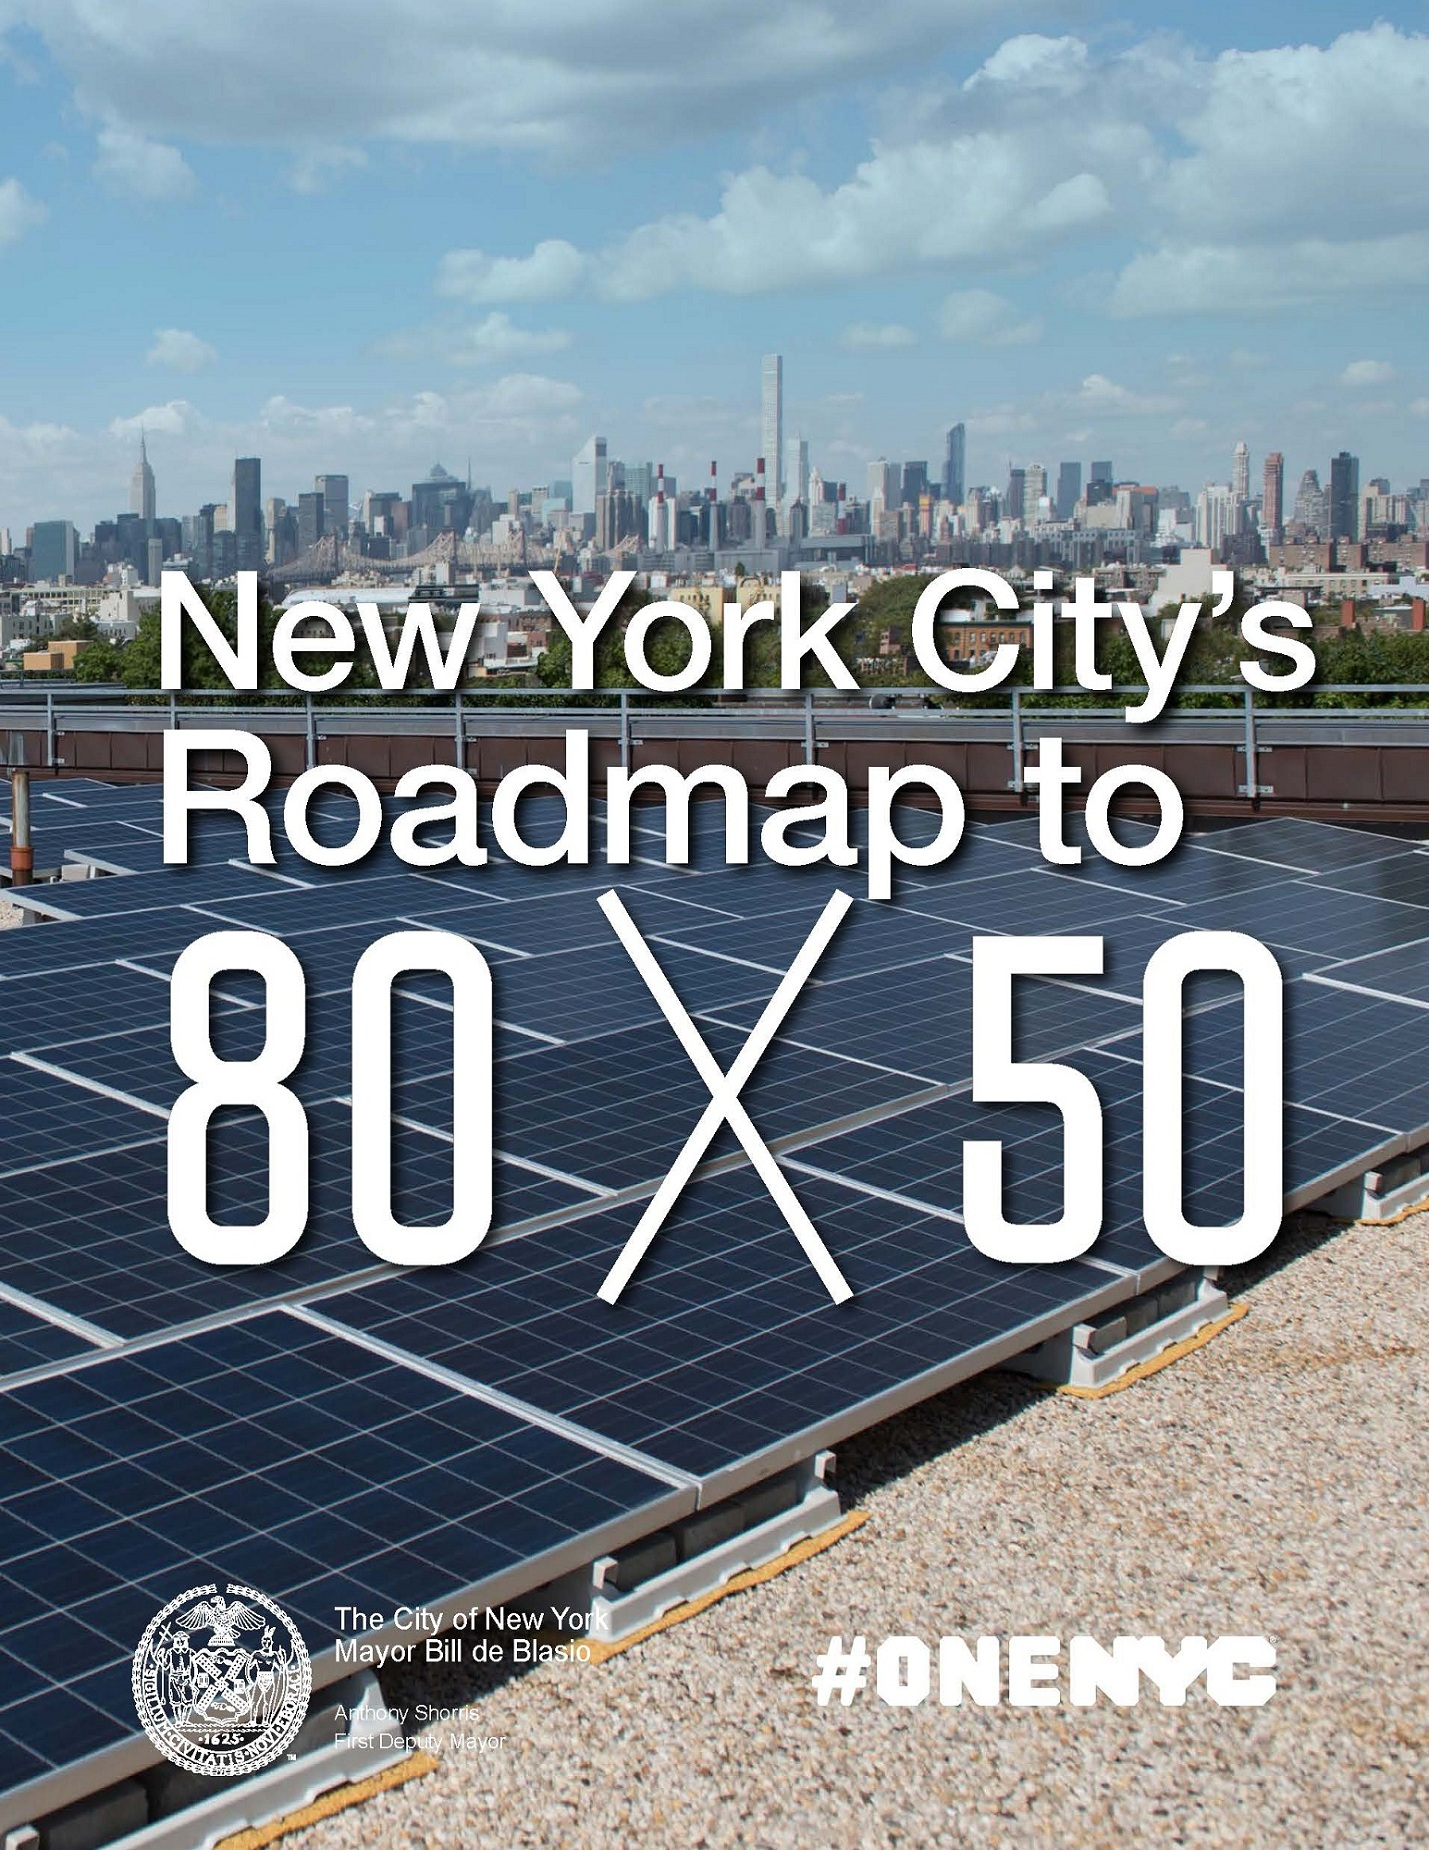 Roadmap Of The Us%0A Road Map Of New York New York City u s Roadmap to x